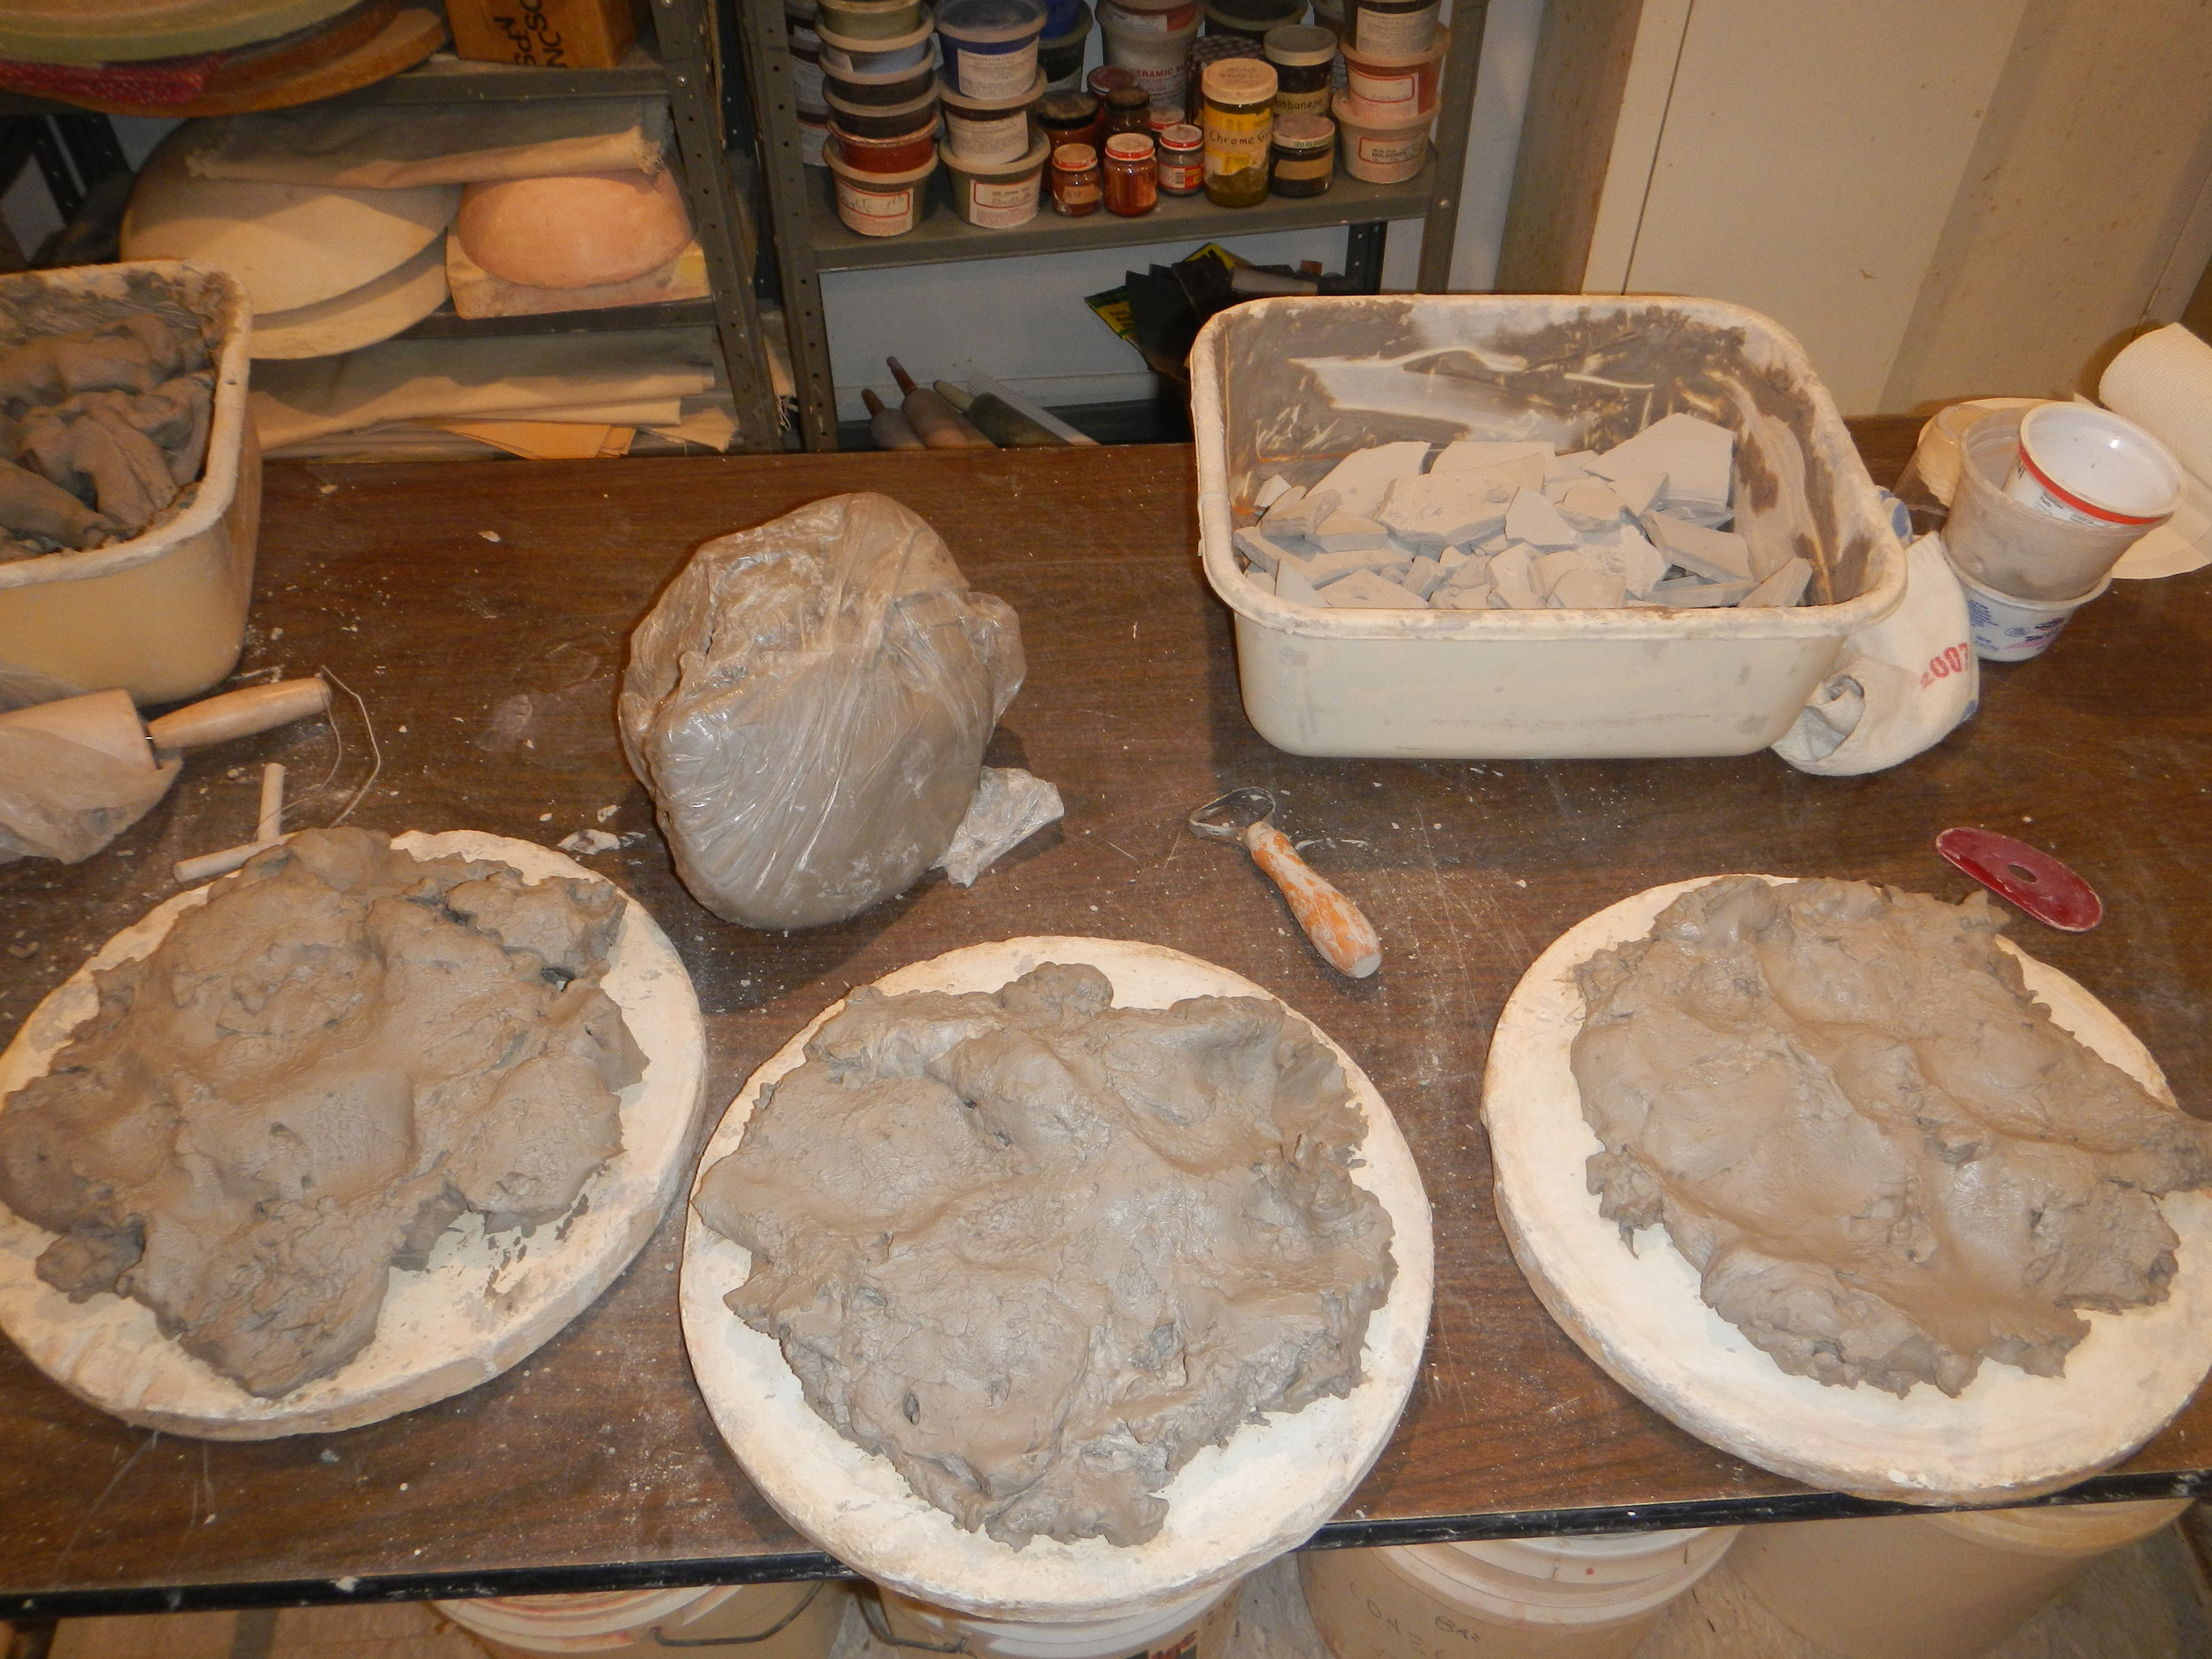 Slaked clay firming up a bit on plaster, nearly ready to wedge. More slaked clay in basins, not seen in the picture, to be spread on batts after this batch and the next batch and... (And more dry clay scrap already building up, in the background.)